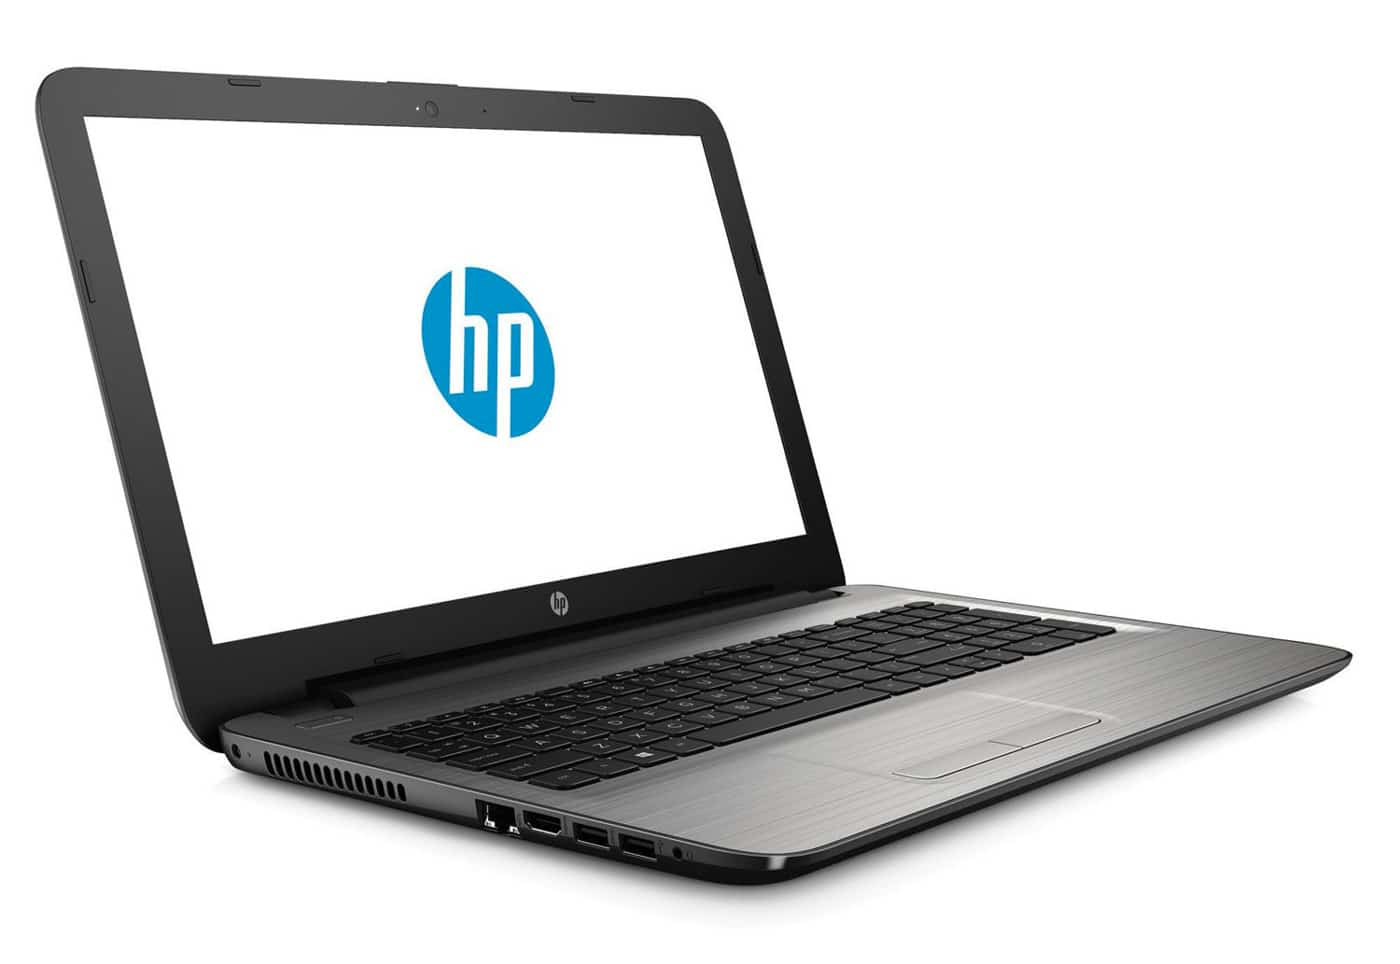 HP 15-ay102nf à 599€, PC portable 15 pouces Core i5 Kaby Lake 1 To Radeon R5